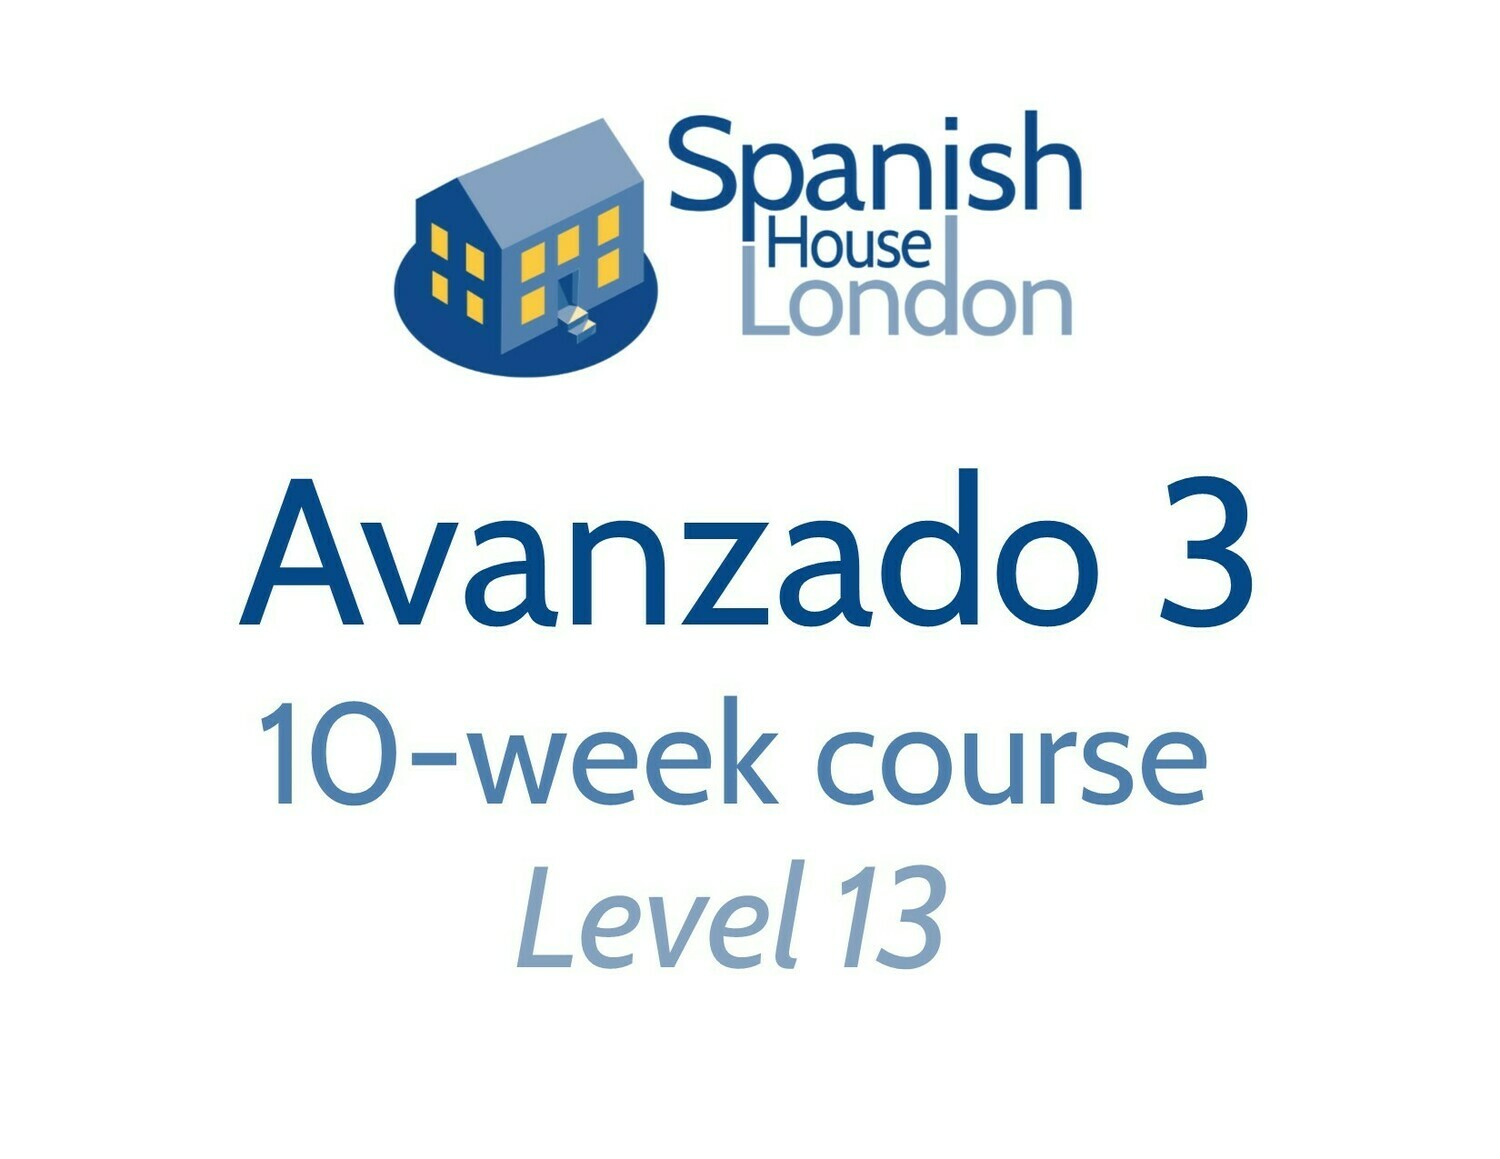 Avanzado 3 Course starting on 29th October at 7.30pm in Clapham North